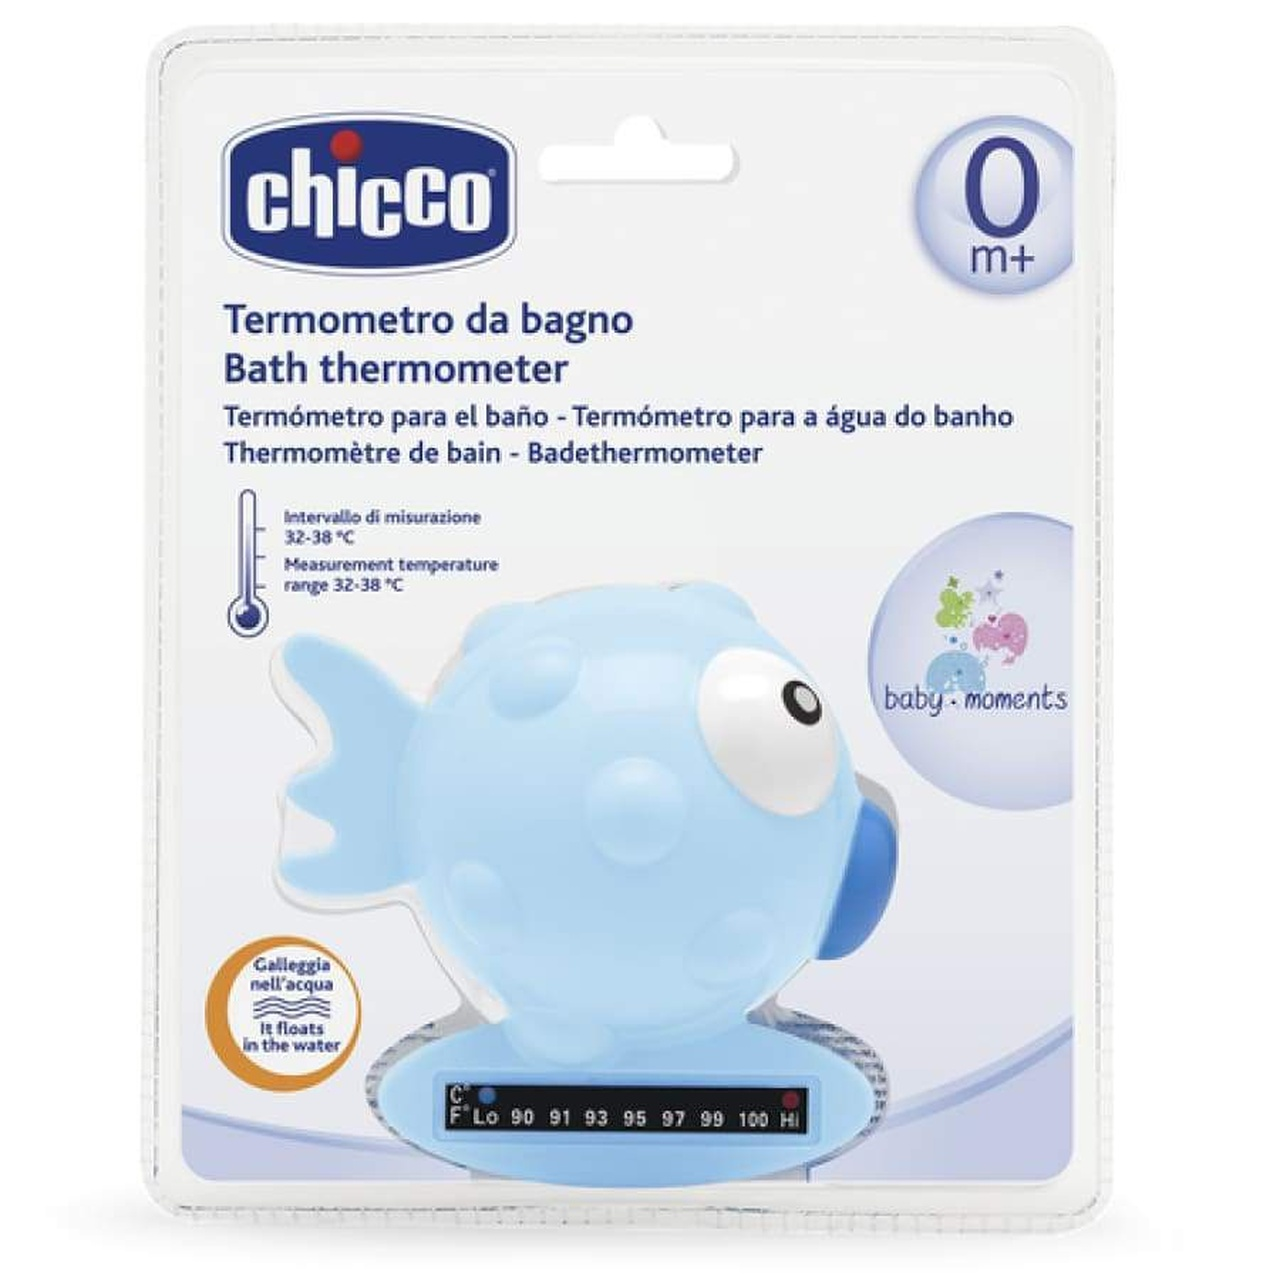 Chicco Bath Thermometer Fish Design at Baby Barn Discounts Chicco bath thermometer range from 32 - 38 degrees Celsius.